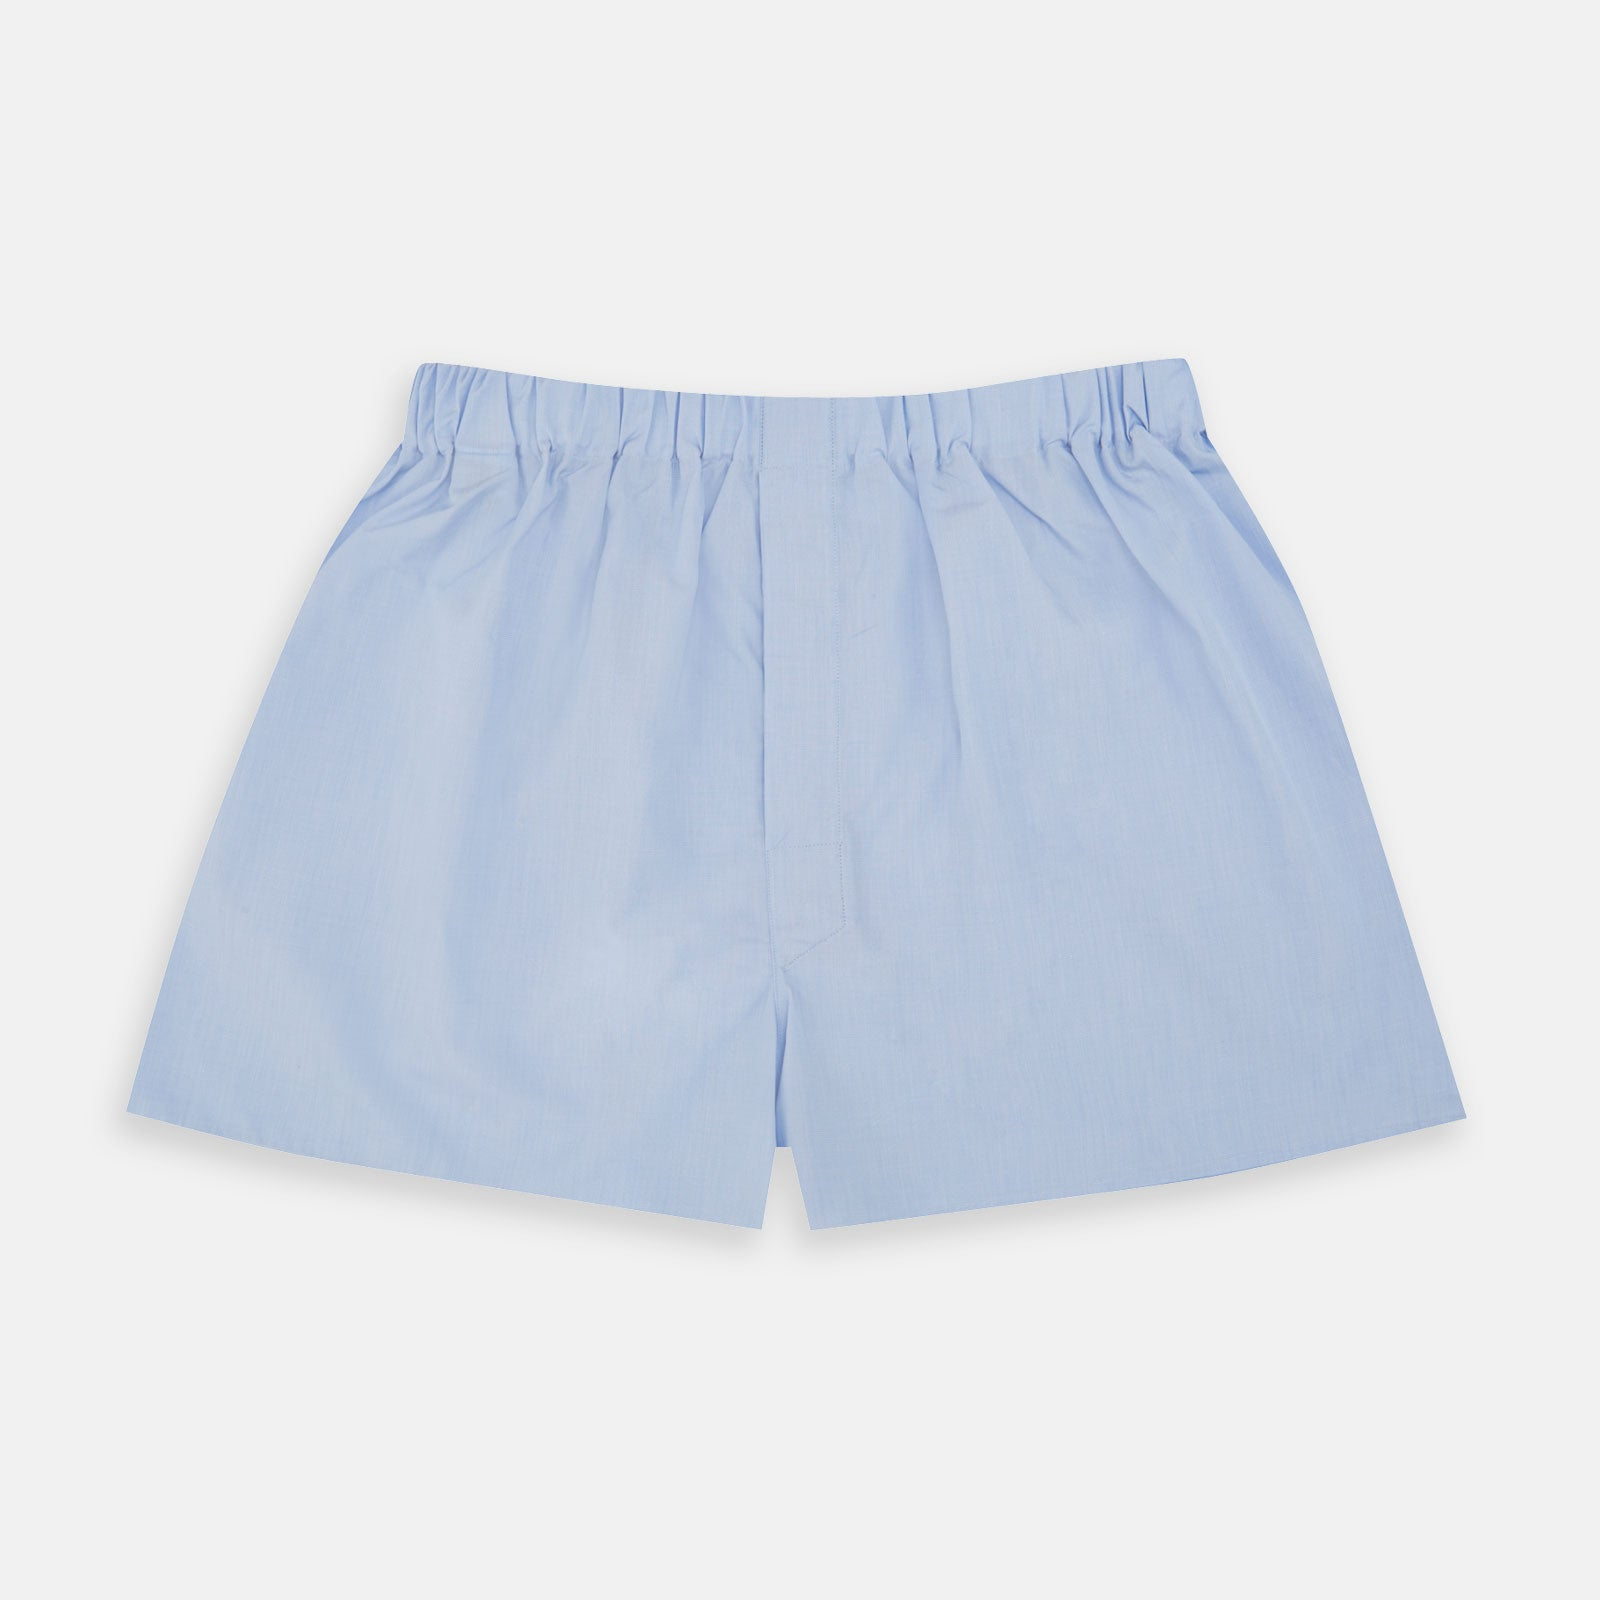 Light Blue End-On-End Cotton Boxer Shorts